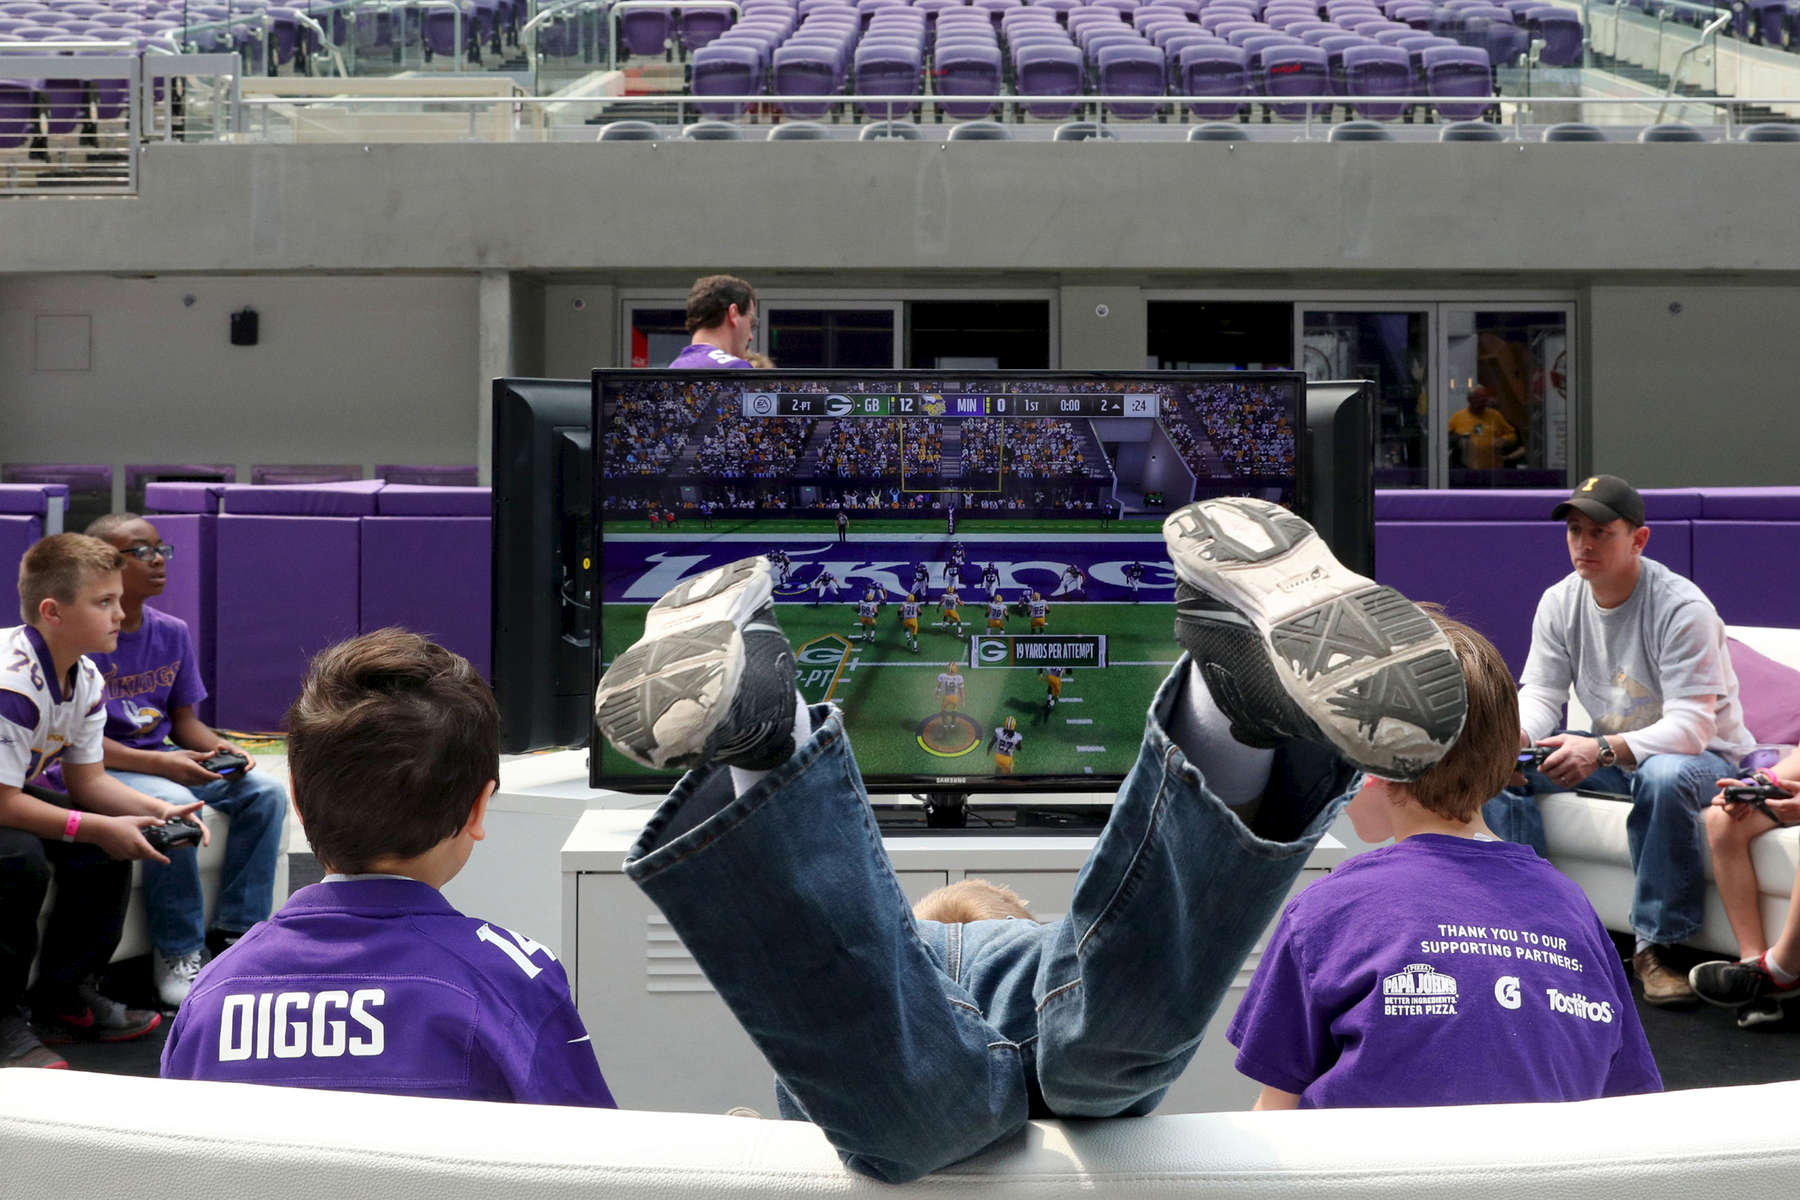 Vikings fans, from left, Sean Mansur, 9, Gavin Curran 7, center, and Mason Ressie, 8, play a football video game during FanFest at U.S. Bank Stadium in Minneapolis.